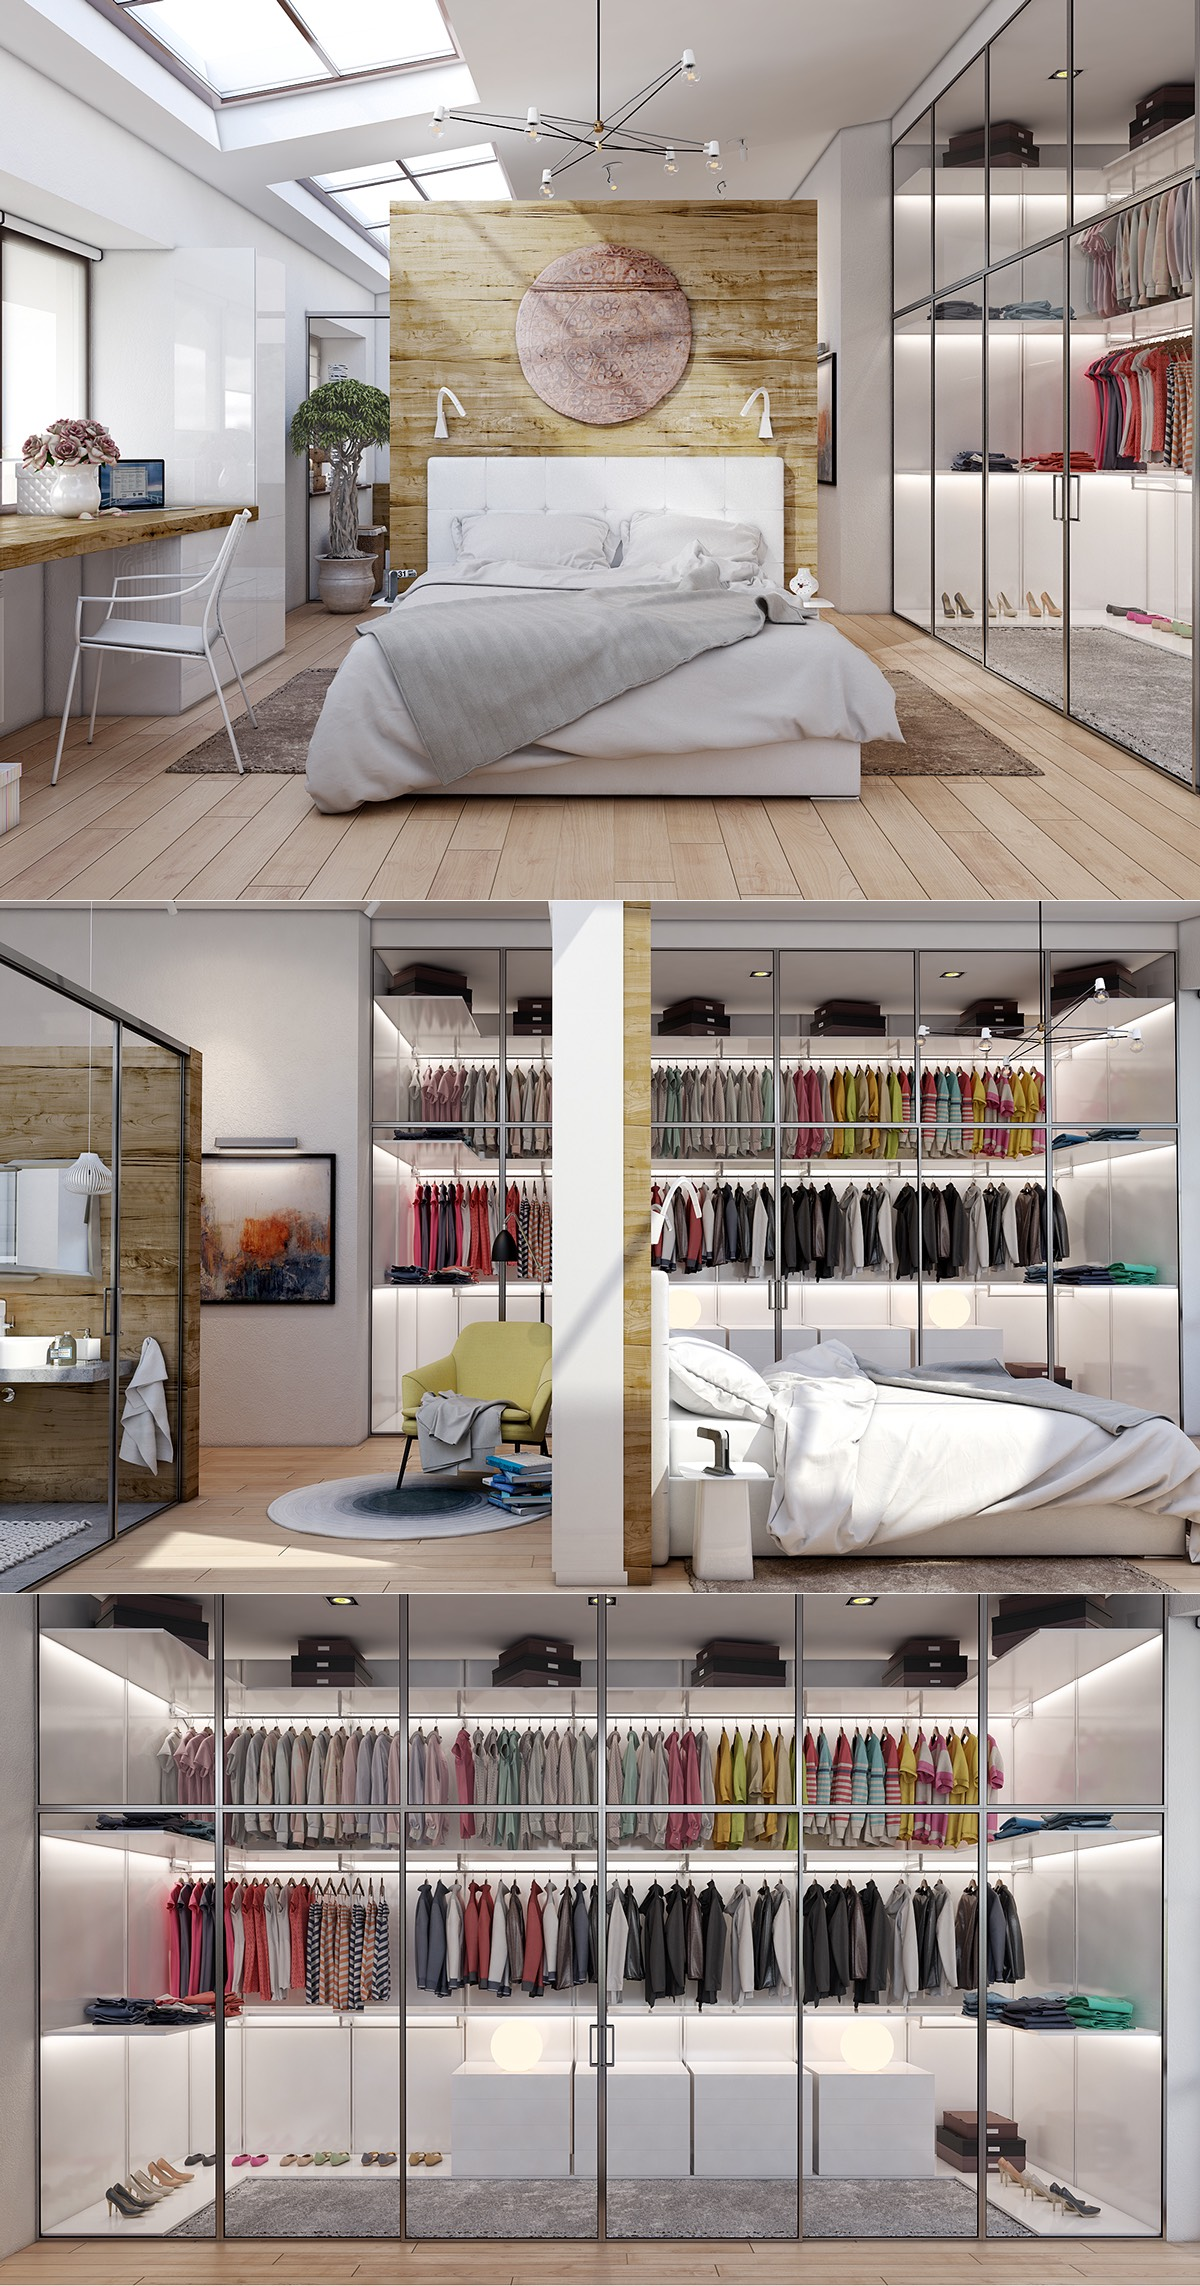 20 beautiful examples of bedrooms with attached wardrobes rh home designing com